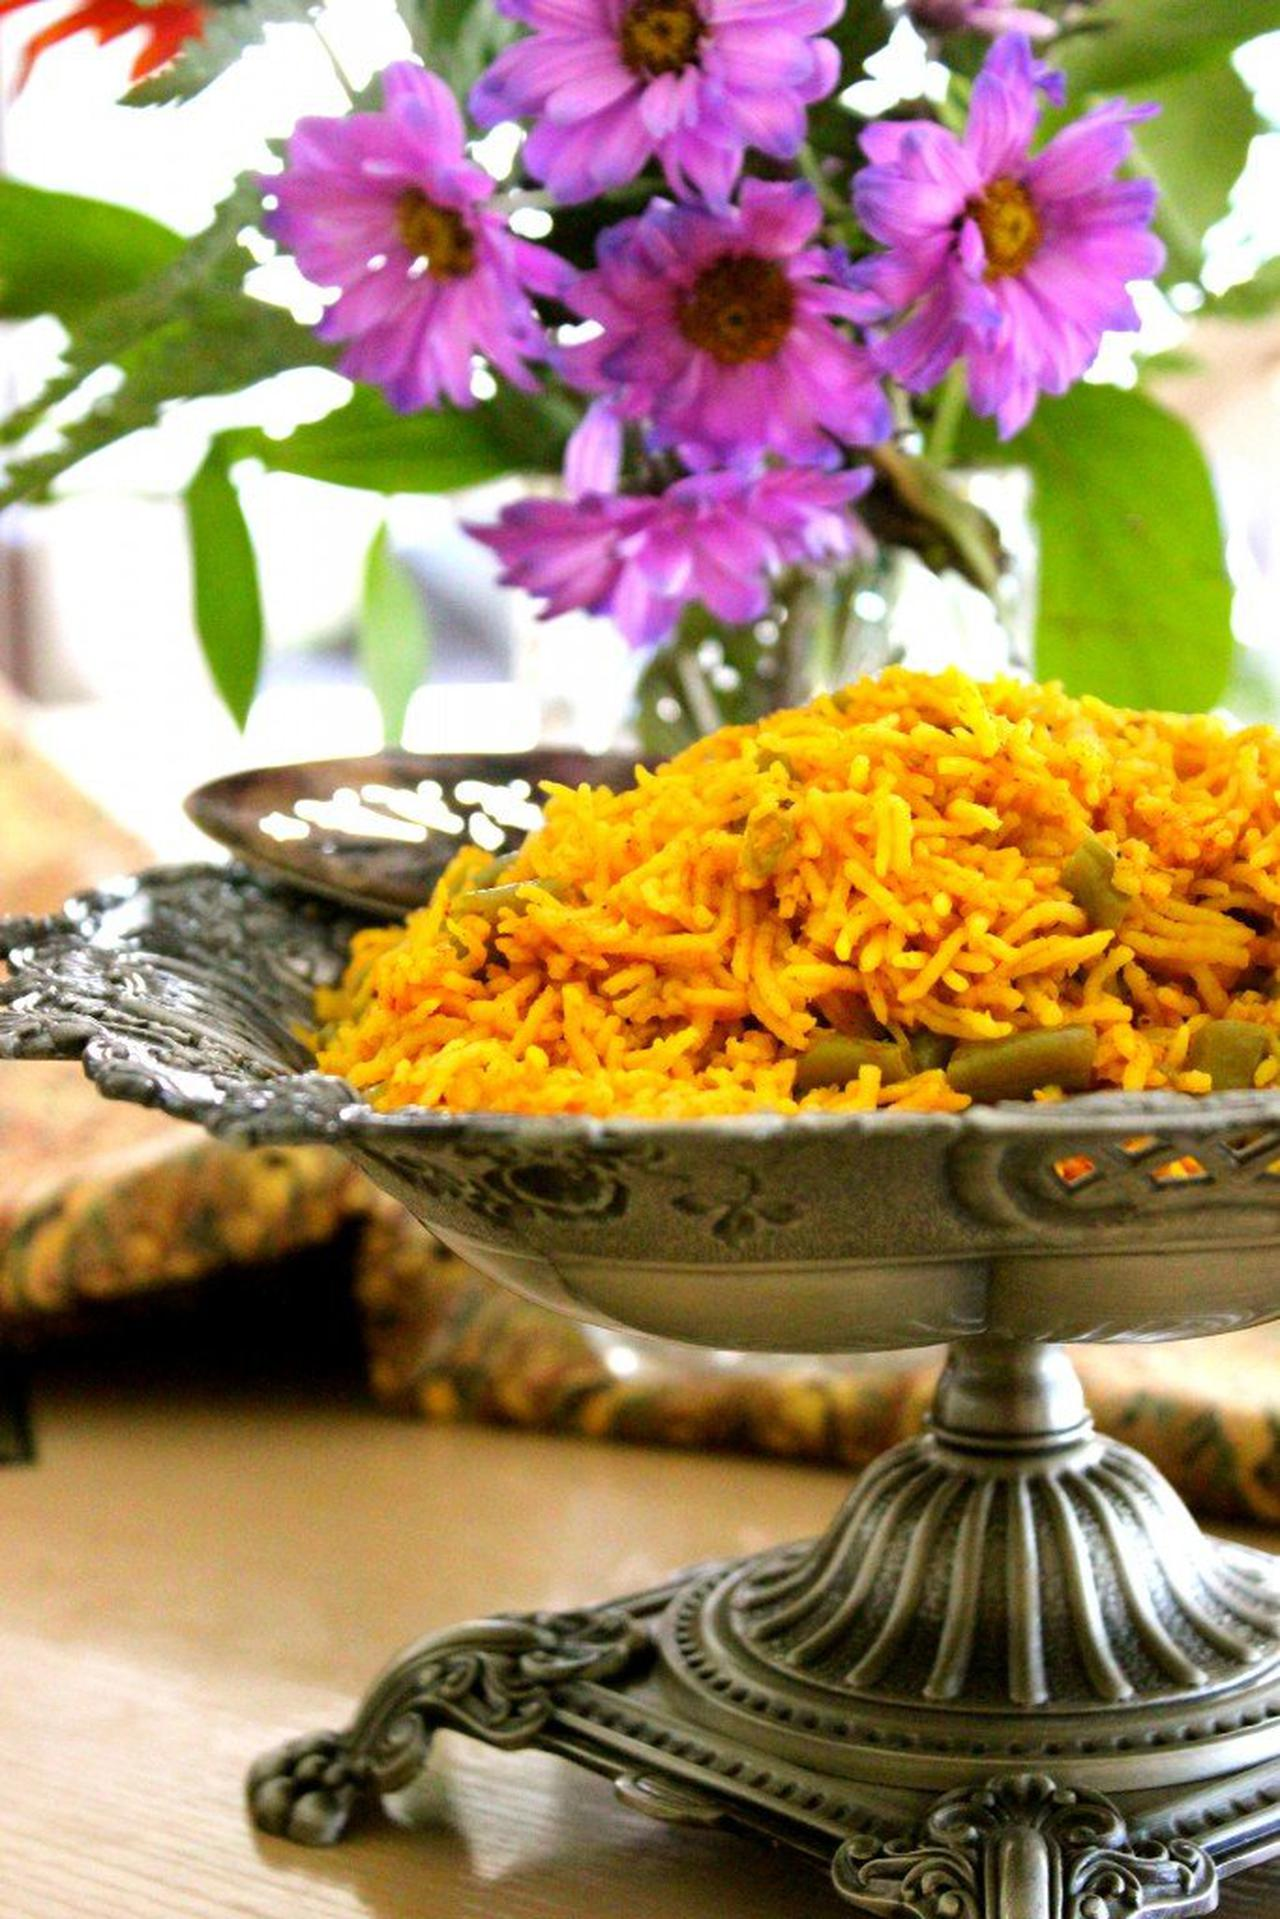 Main image of Afghan Green Bean Spiced Rice